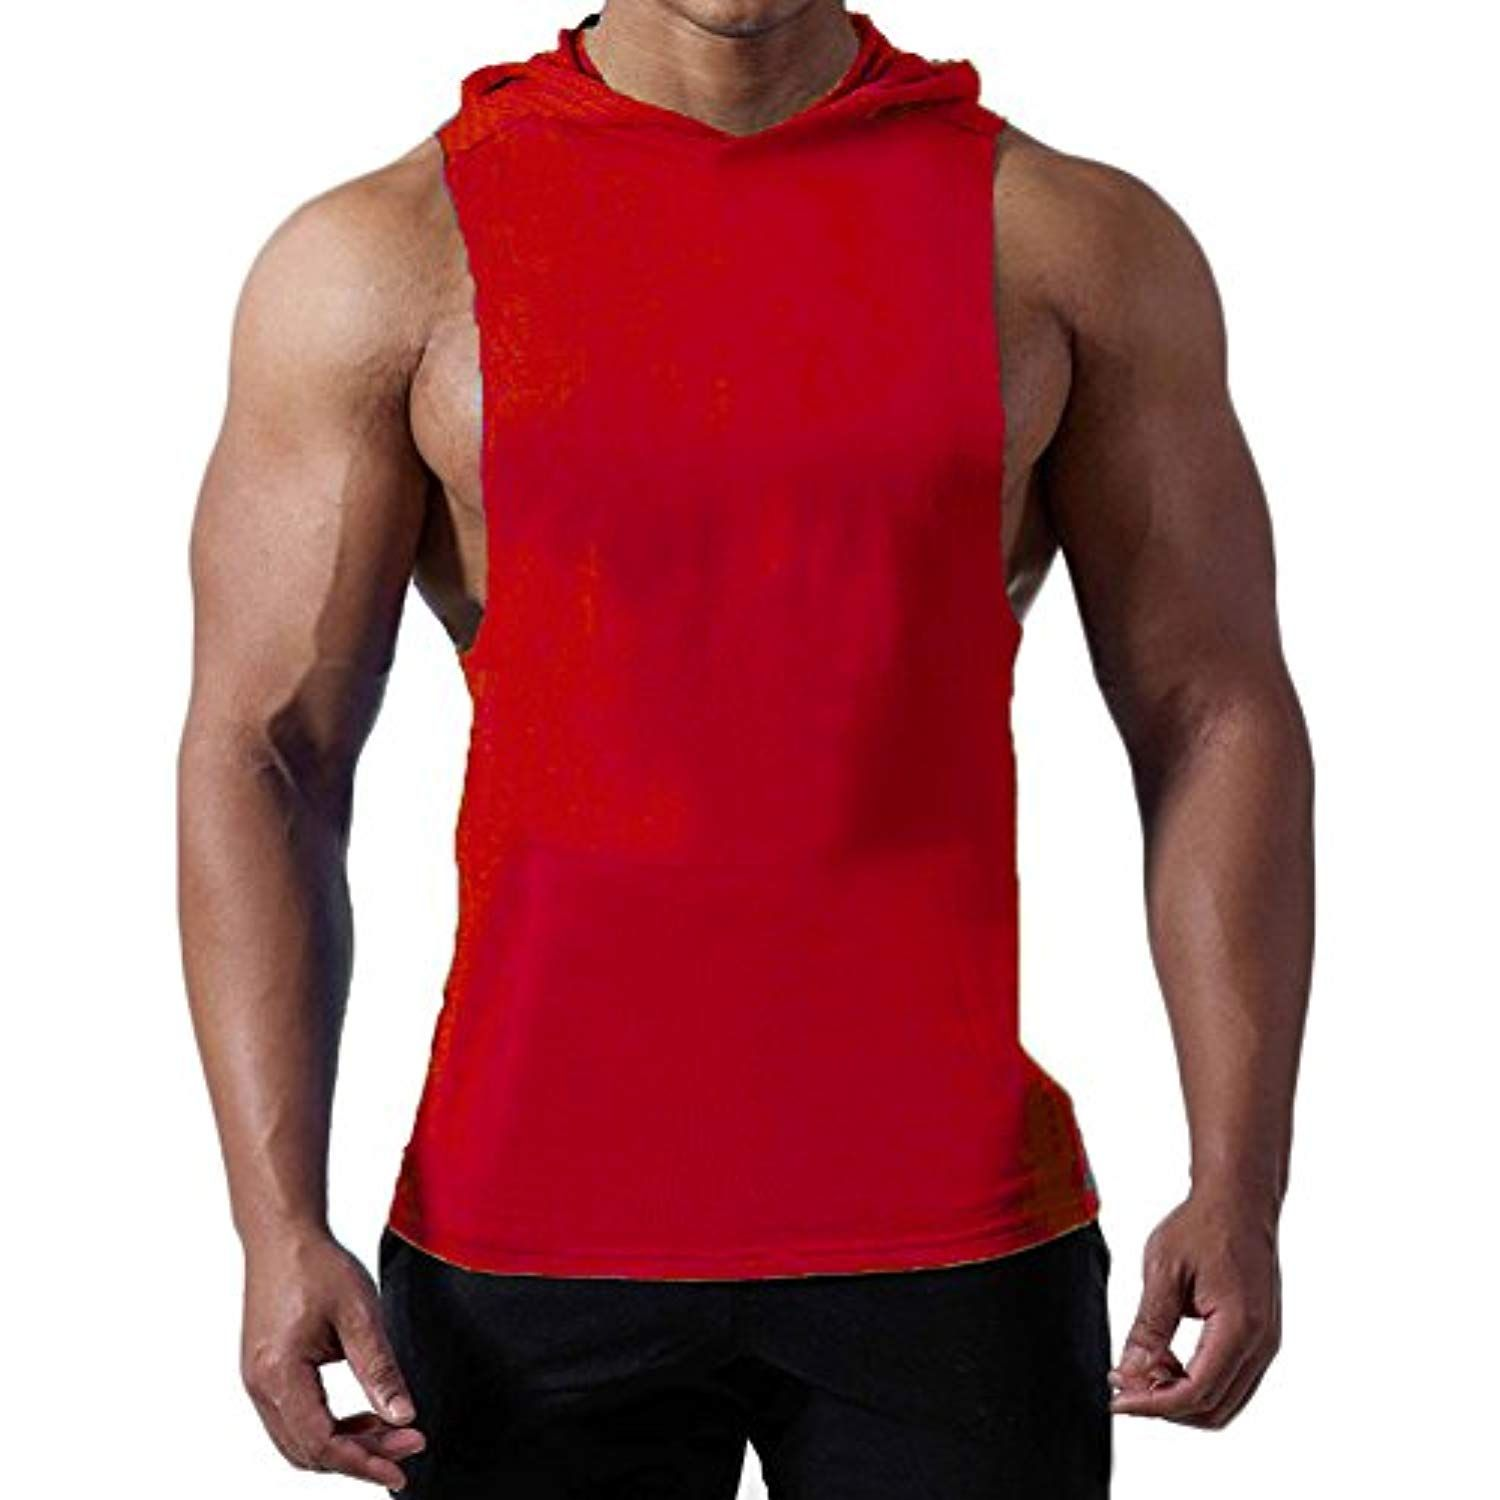 5212ddd5b1765 Magiftbox Mens Workout Hooded Tank Tops Sleeveless Gym Hoodies With Kanga  Pocket Cool and Muscle Cut     You can find more details by visiting the  image ...